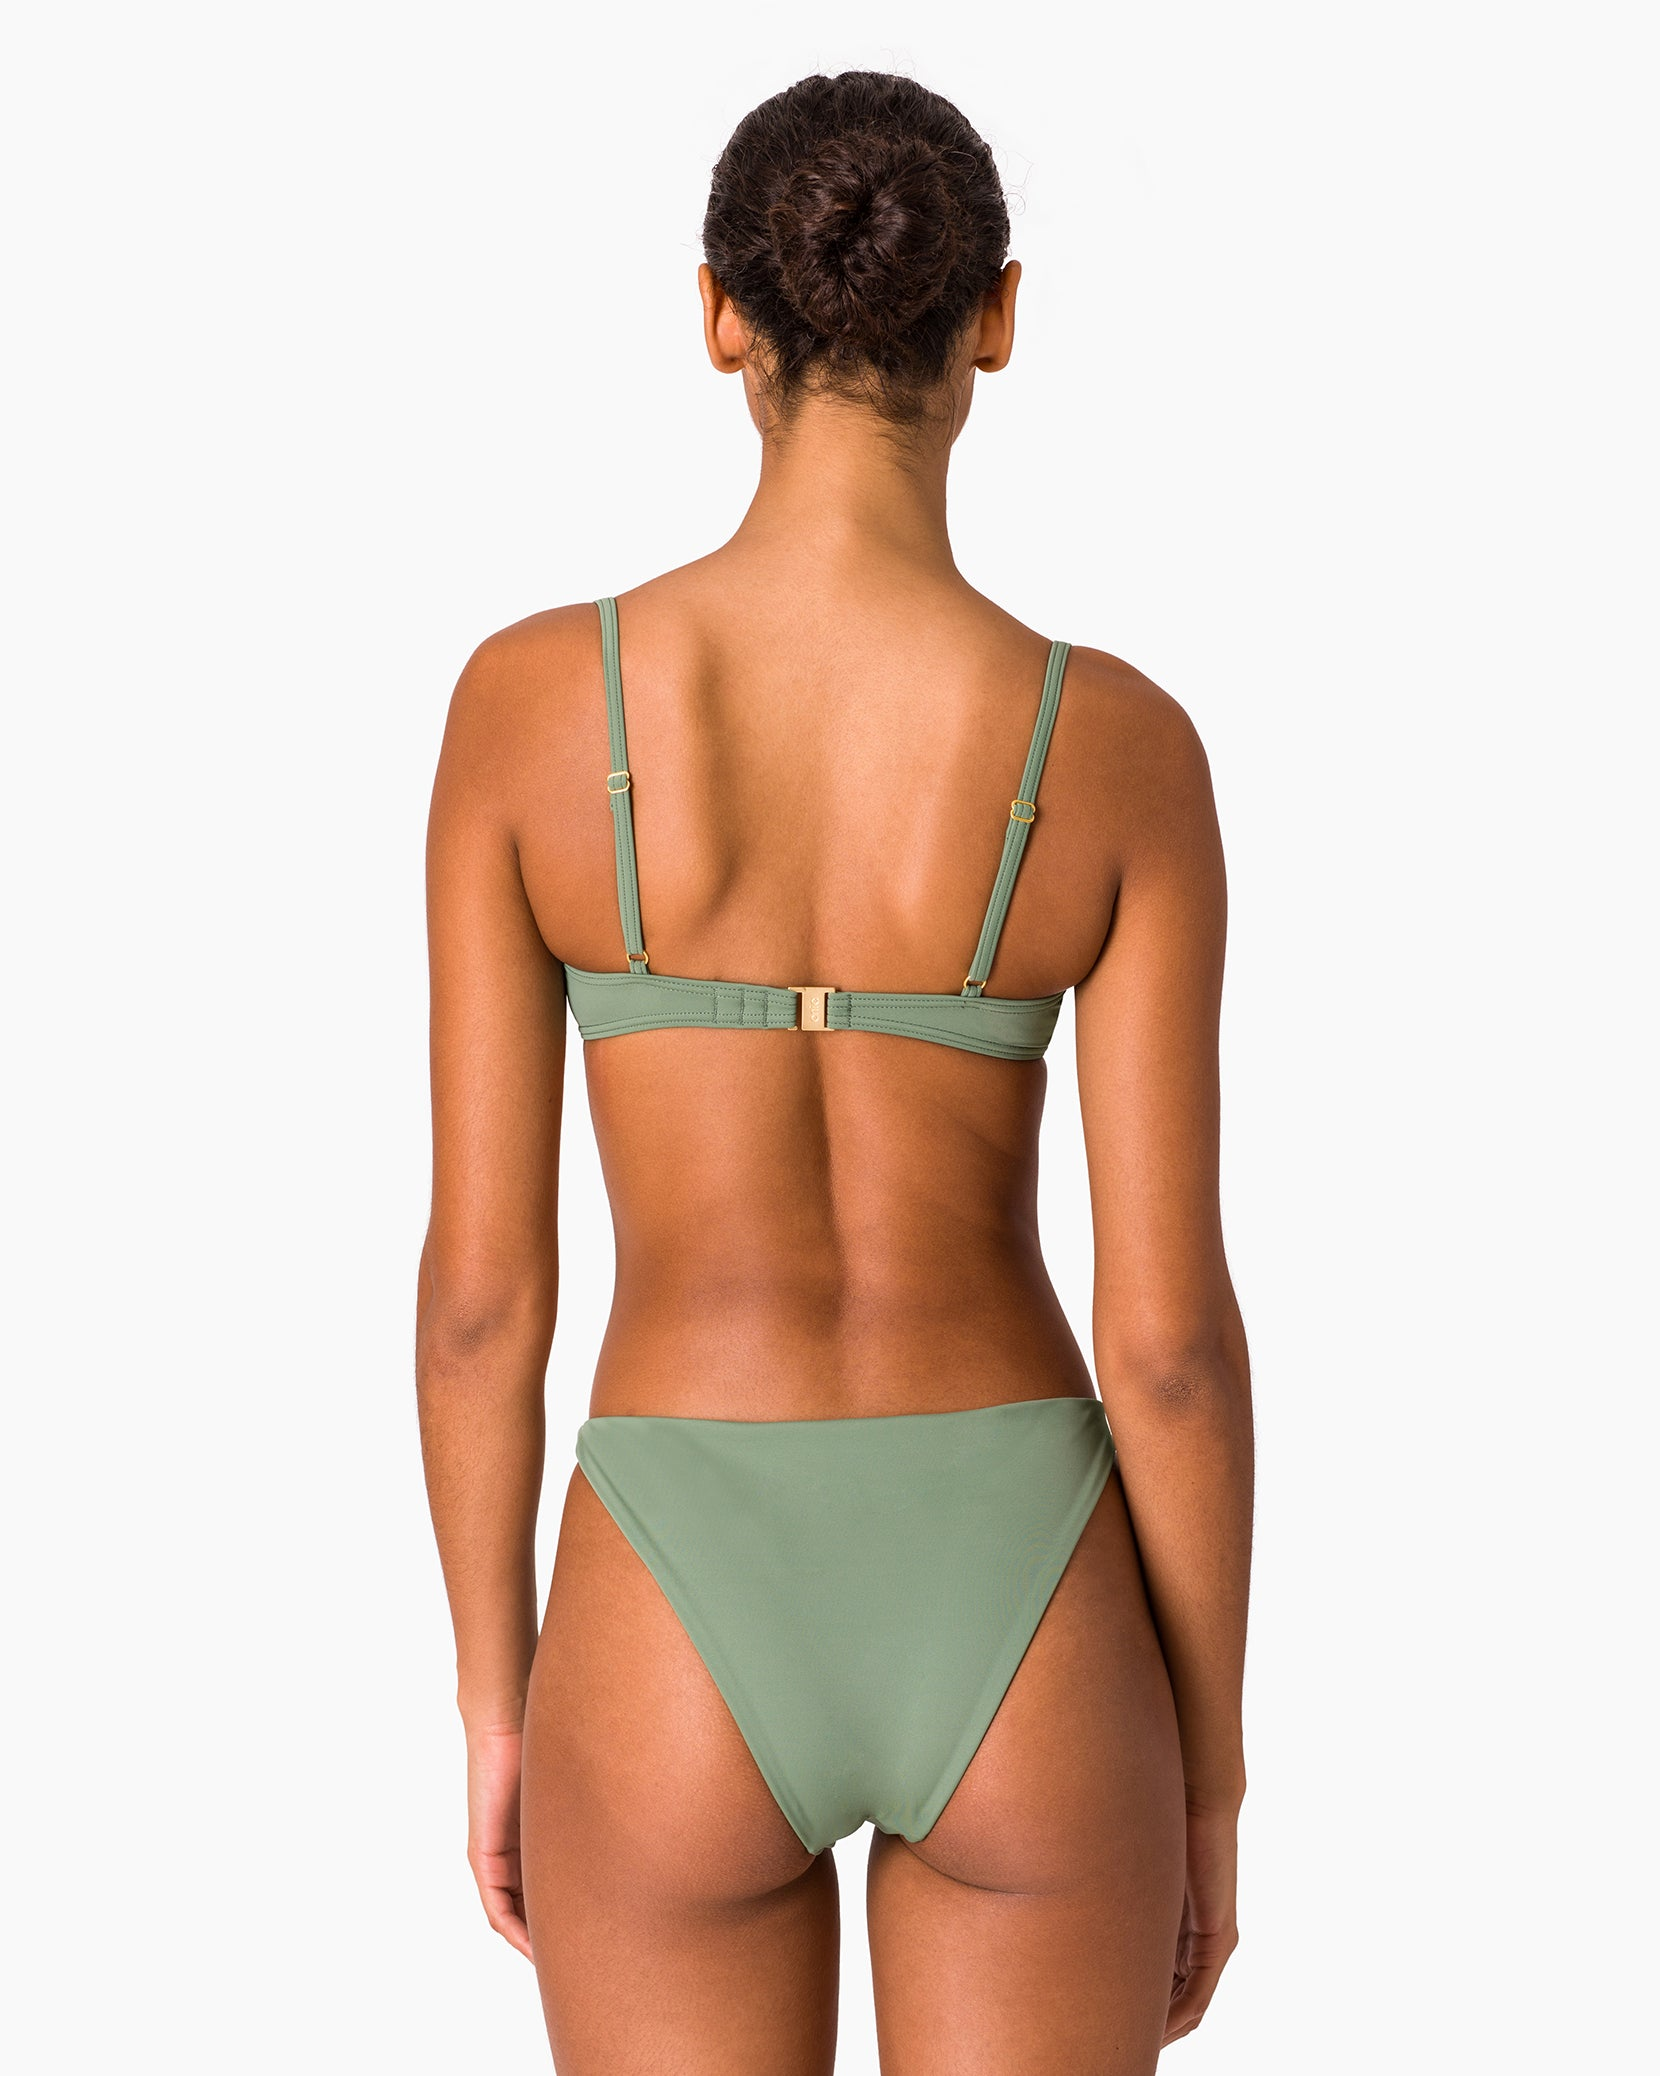 Dalia Bikini Top in Army Green - 8 - Onia